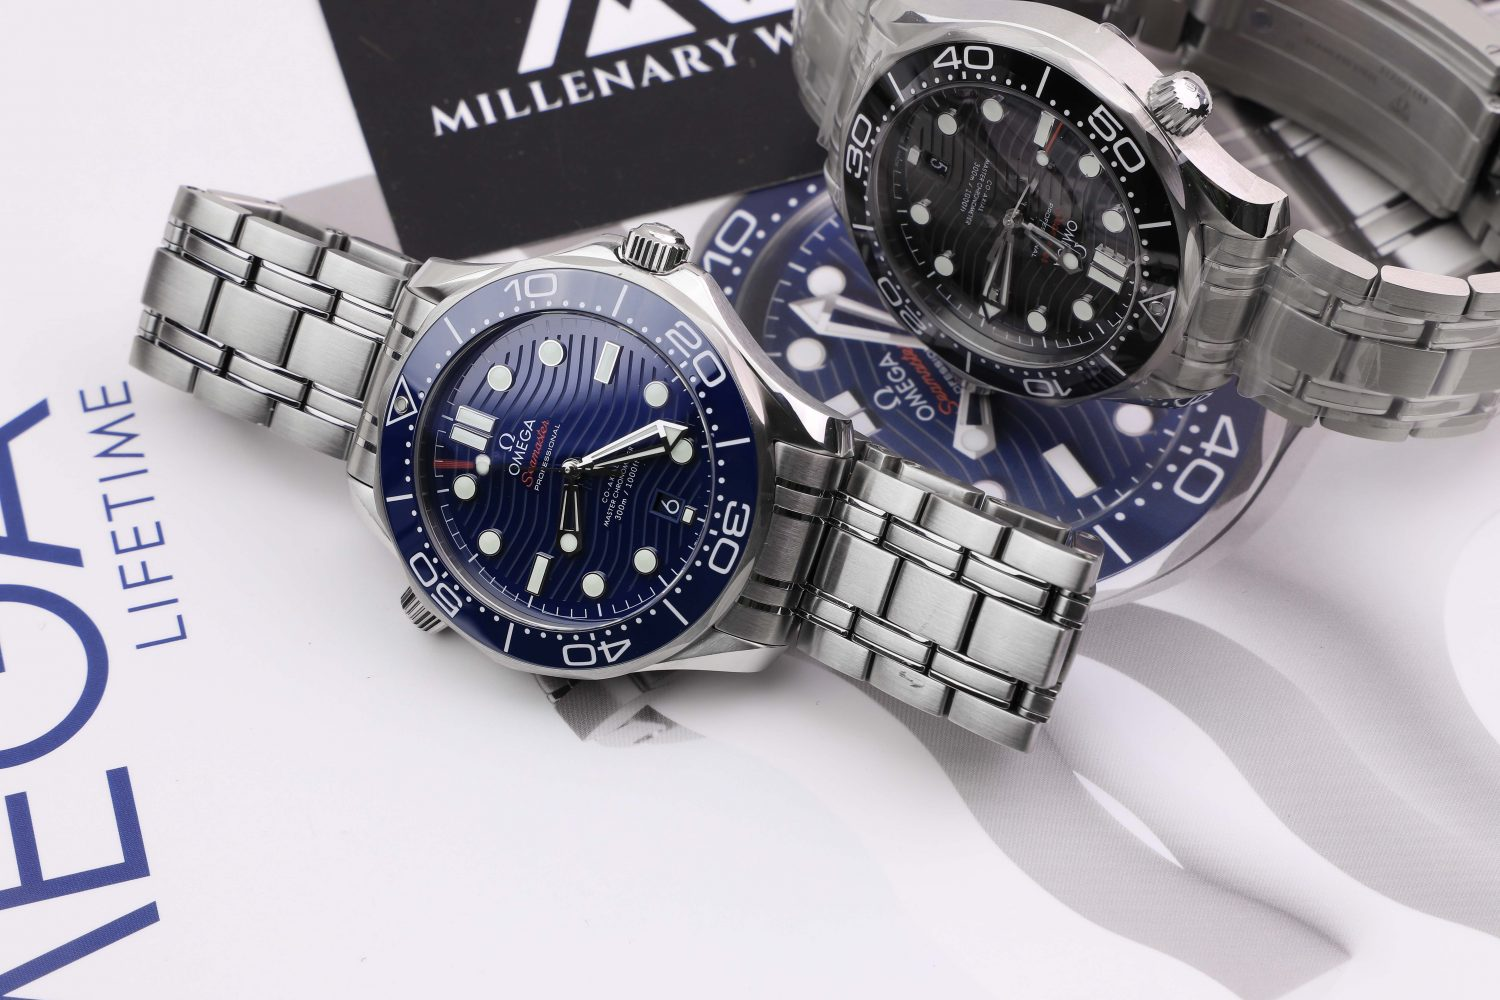 Omega Seamaster ceramic blue dial steel bracelet wave dial for sale buy online Millenary Watches